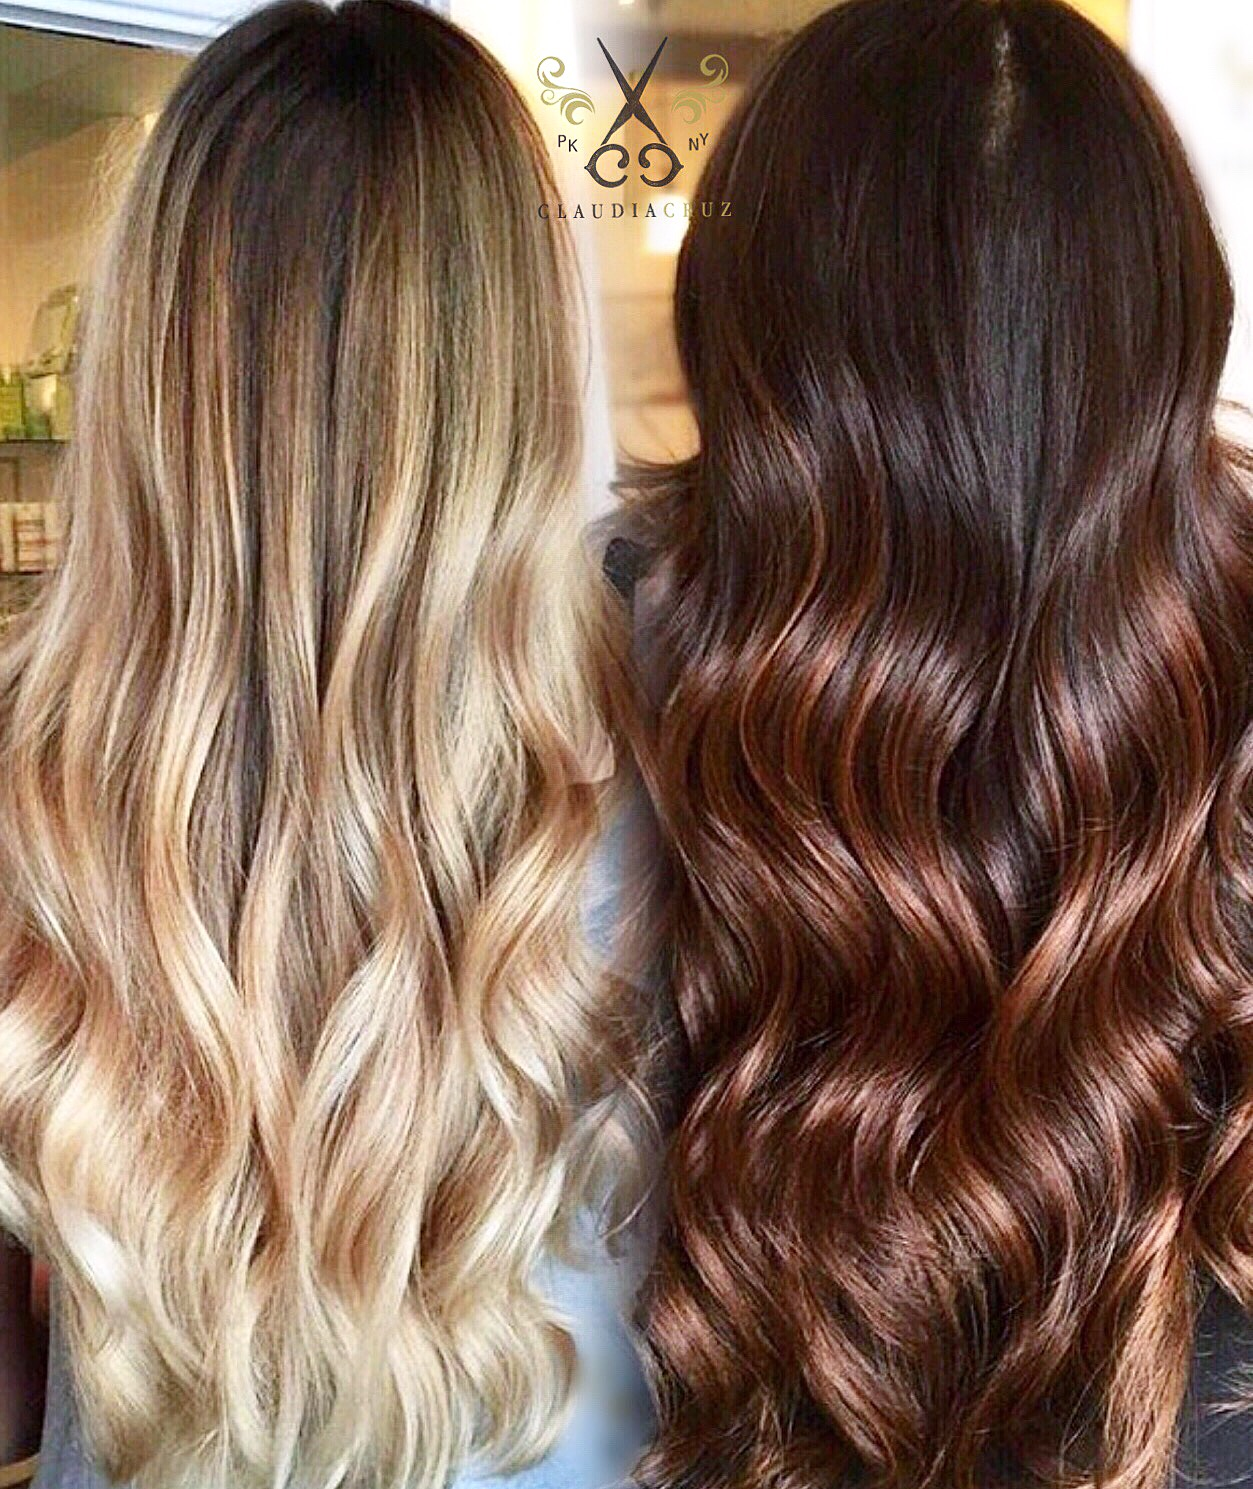 2 balayage looks blonde and caramel sombre career modern salon. Black Bedroom Furniture Sets. Home Design Ideas